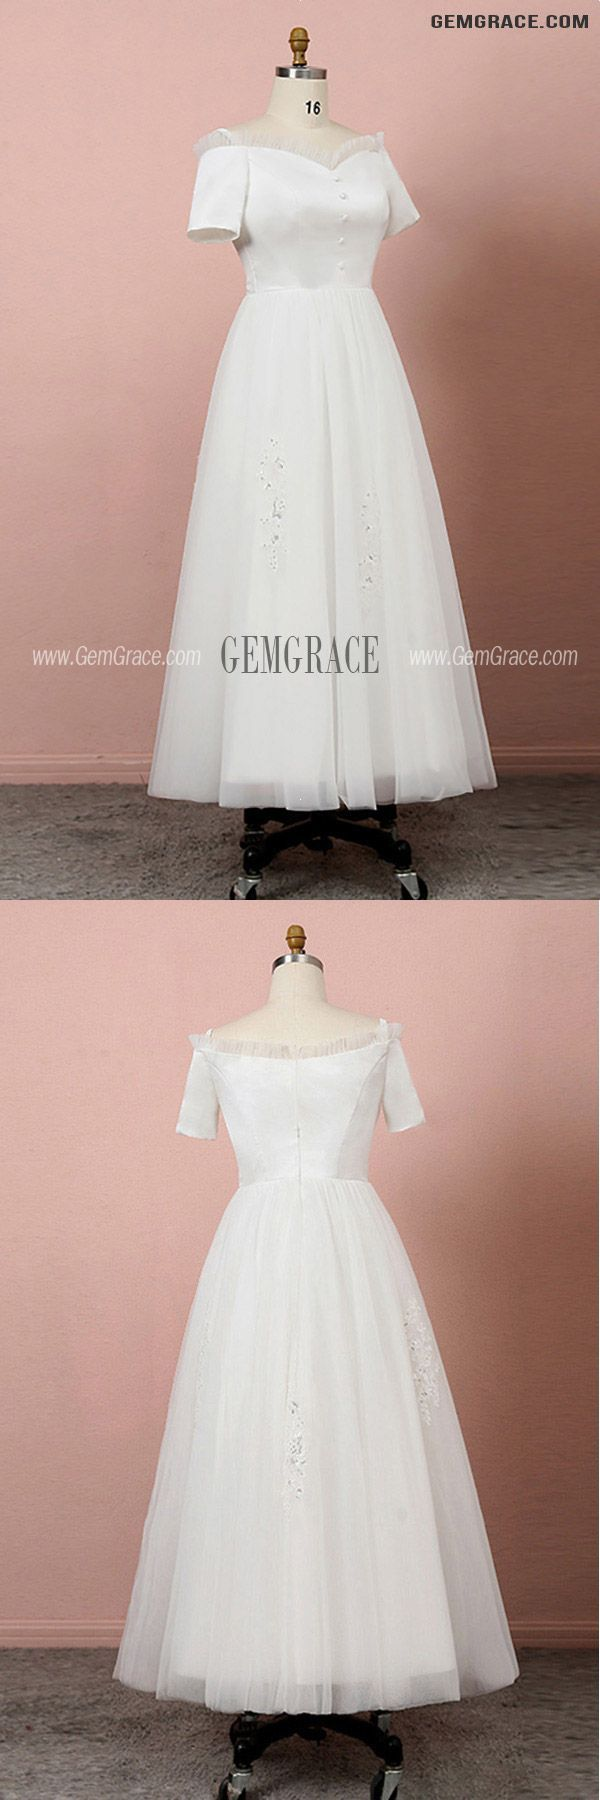 143 79 Custom Ivory Retro Ankle Length Wedding Dress With Appliques High Quality Zn6317 Gemgrace Com In 2021 Ankle Length Wedding Dress Wedding Dress Sleeves Tea Length Dresses [ 1800 x 600 Pixel ]